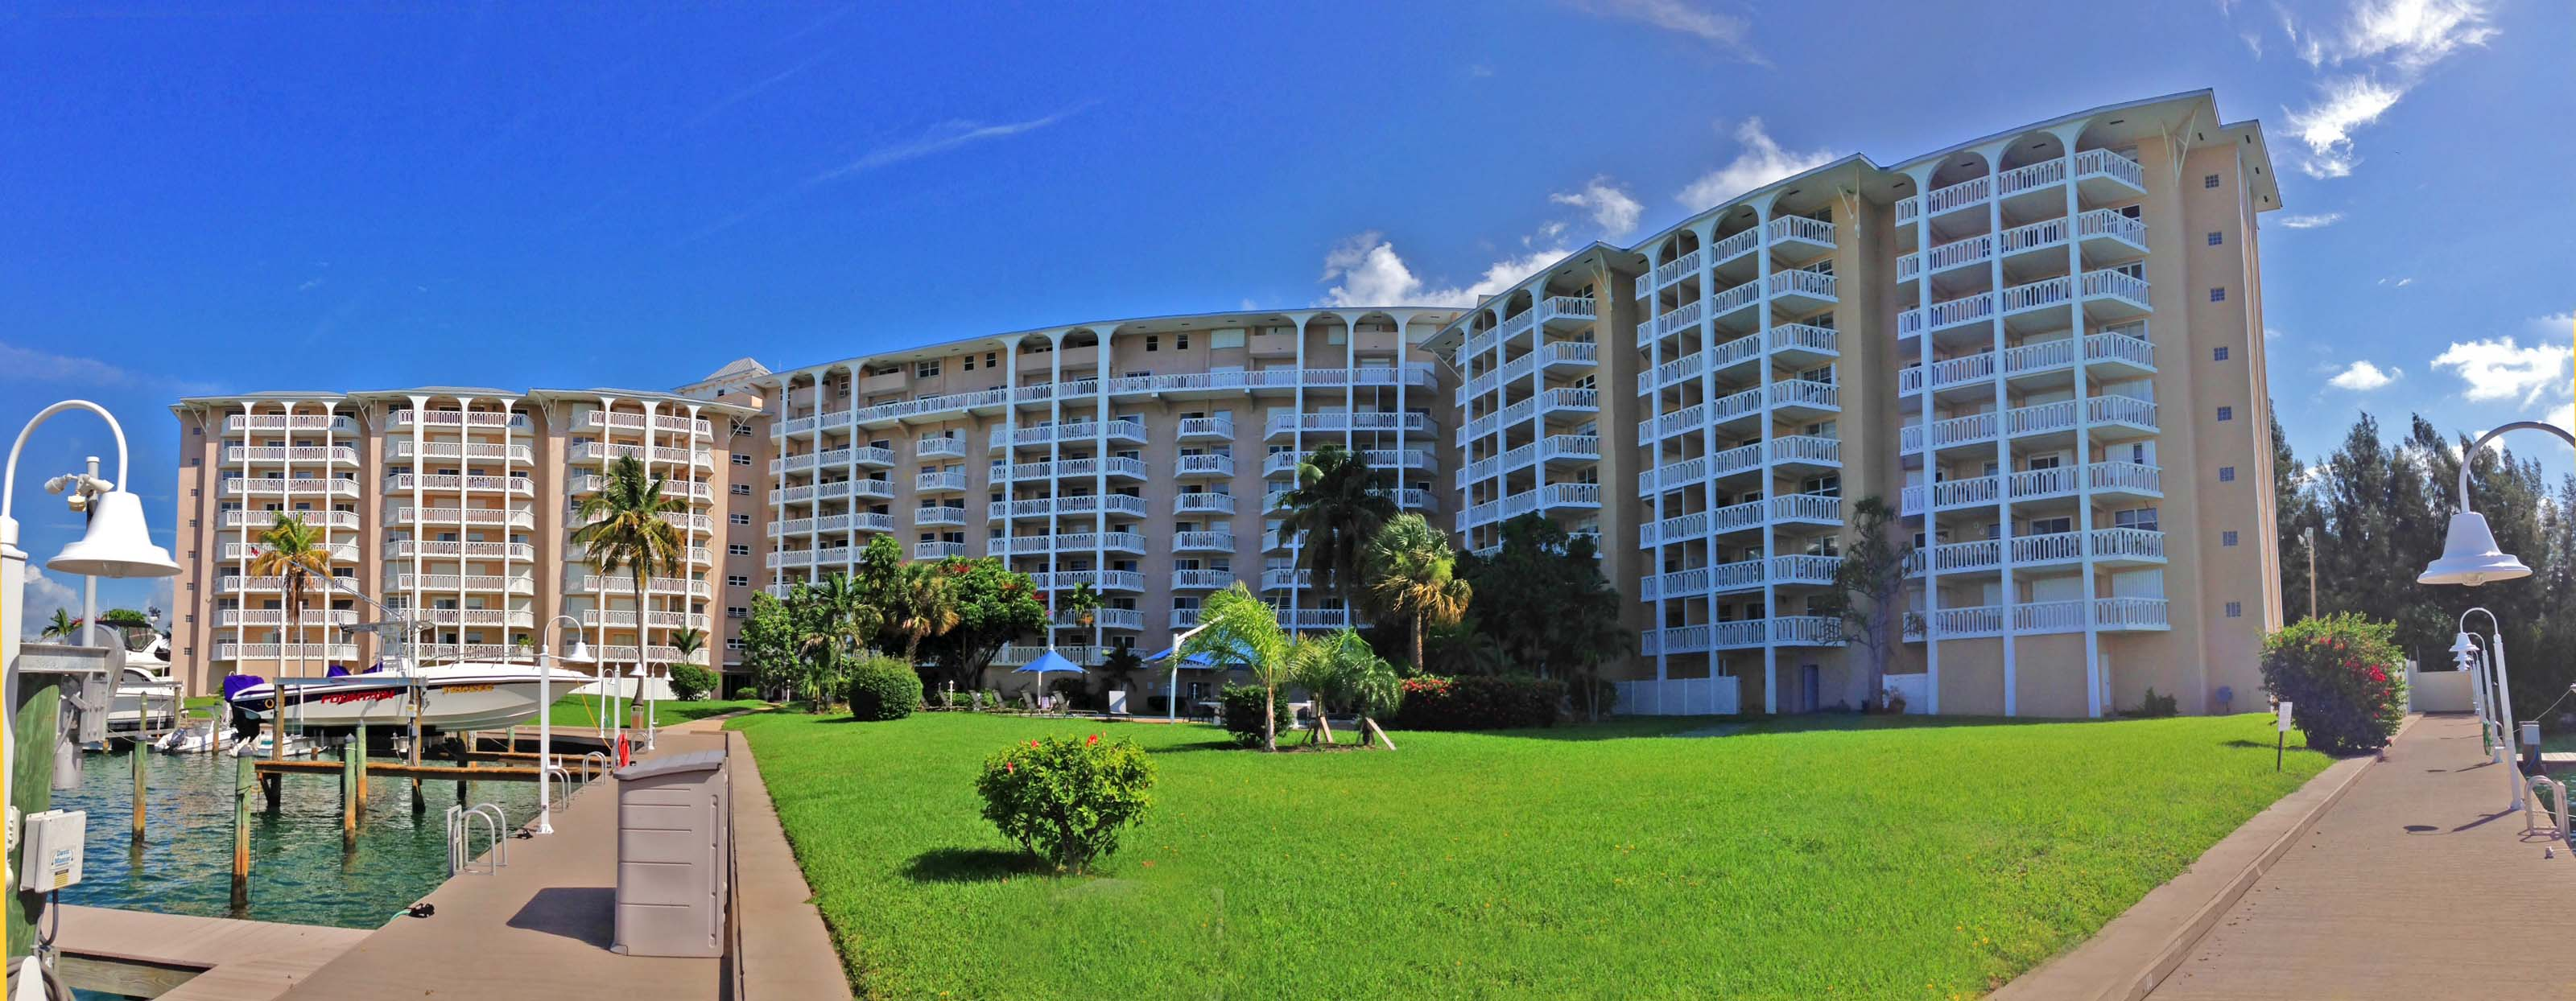 Co-op / Condo for Sale at Spectacular 2 Bedroom Condo in Harbour House Towers Bell Channel, Lucaya, Grand Bahama Bahamas